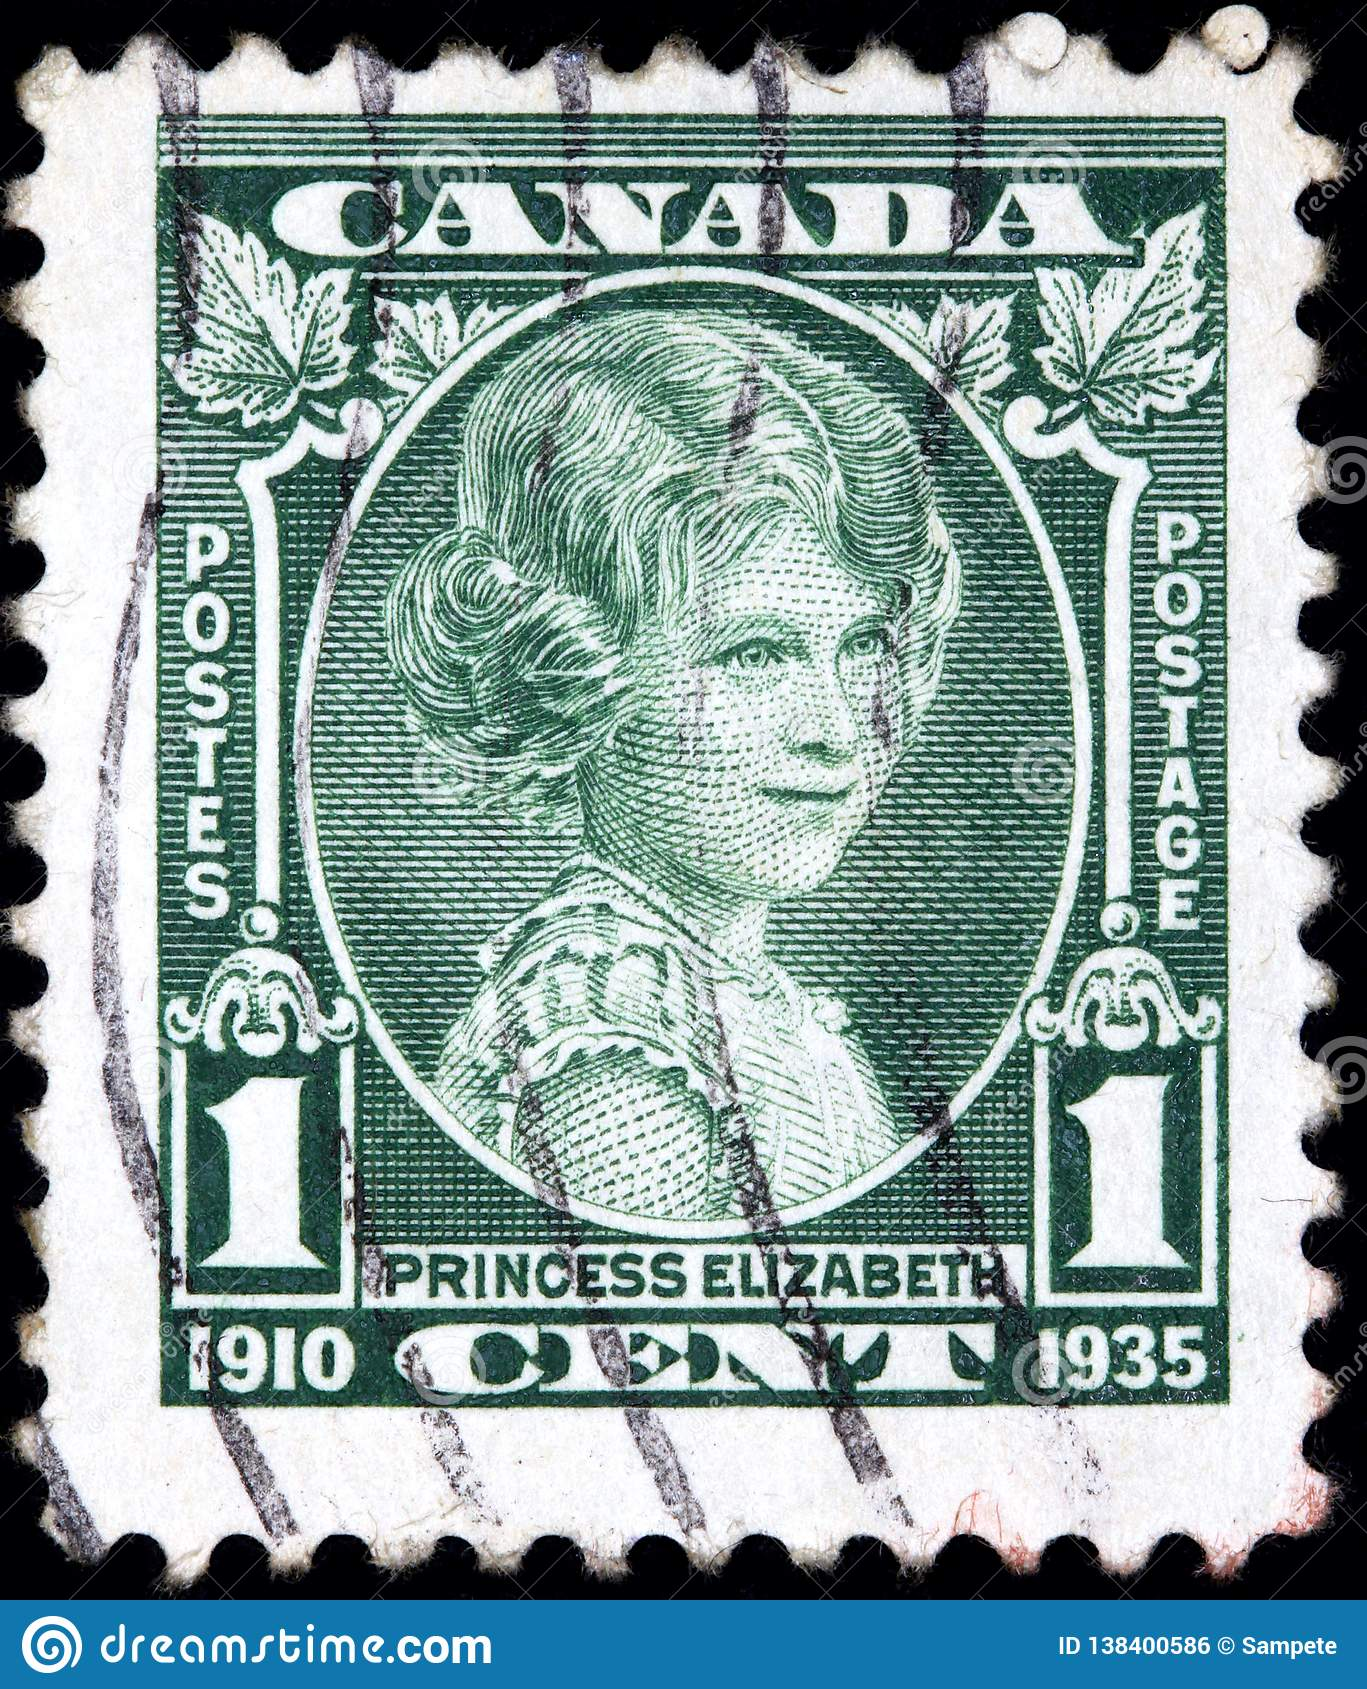 Stamp printed by Canada shows the future Queen Elizabeth aged about 10